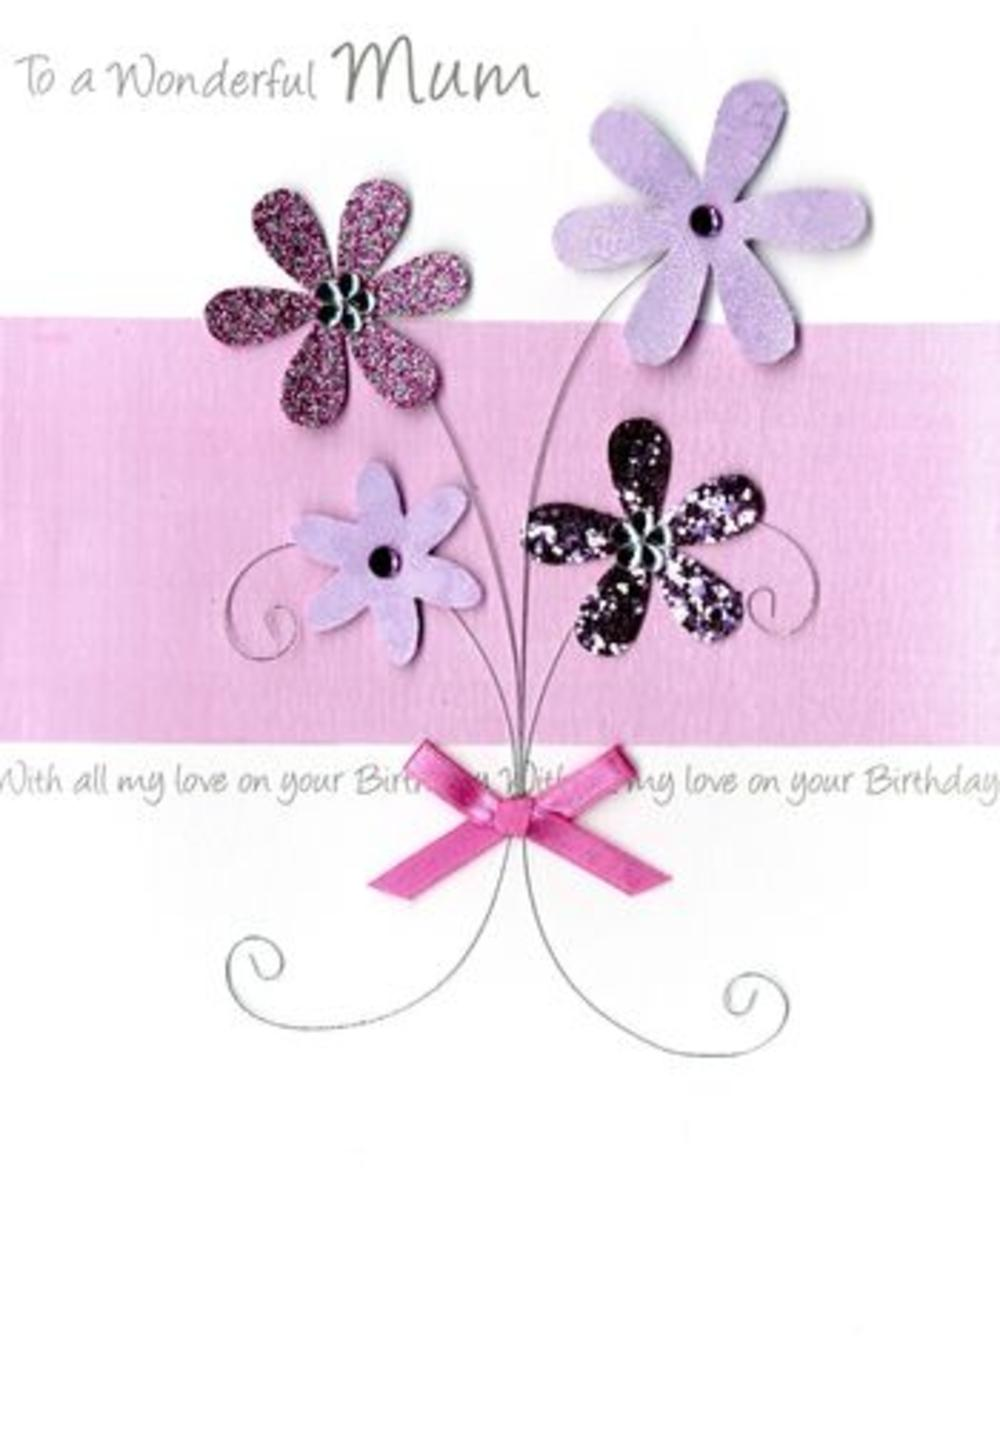 Large Luxury Wonderful Mum Birthday Greeting Card